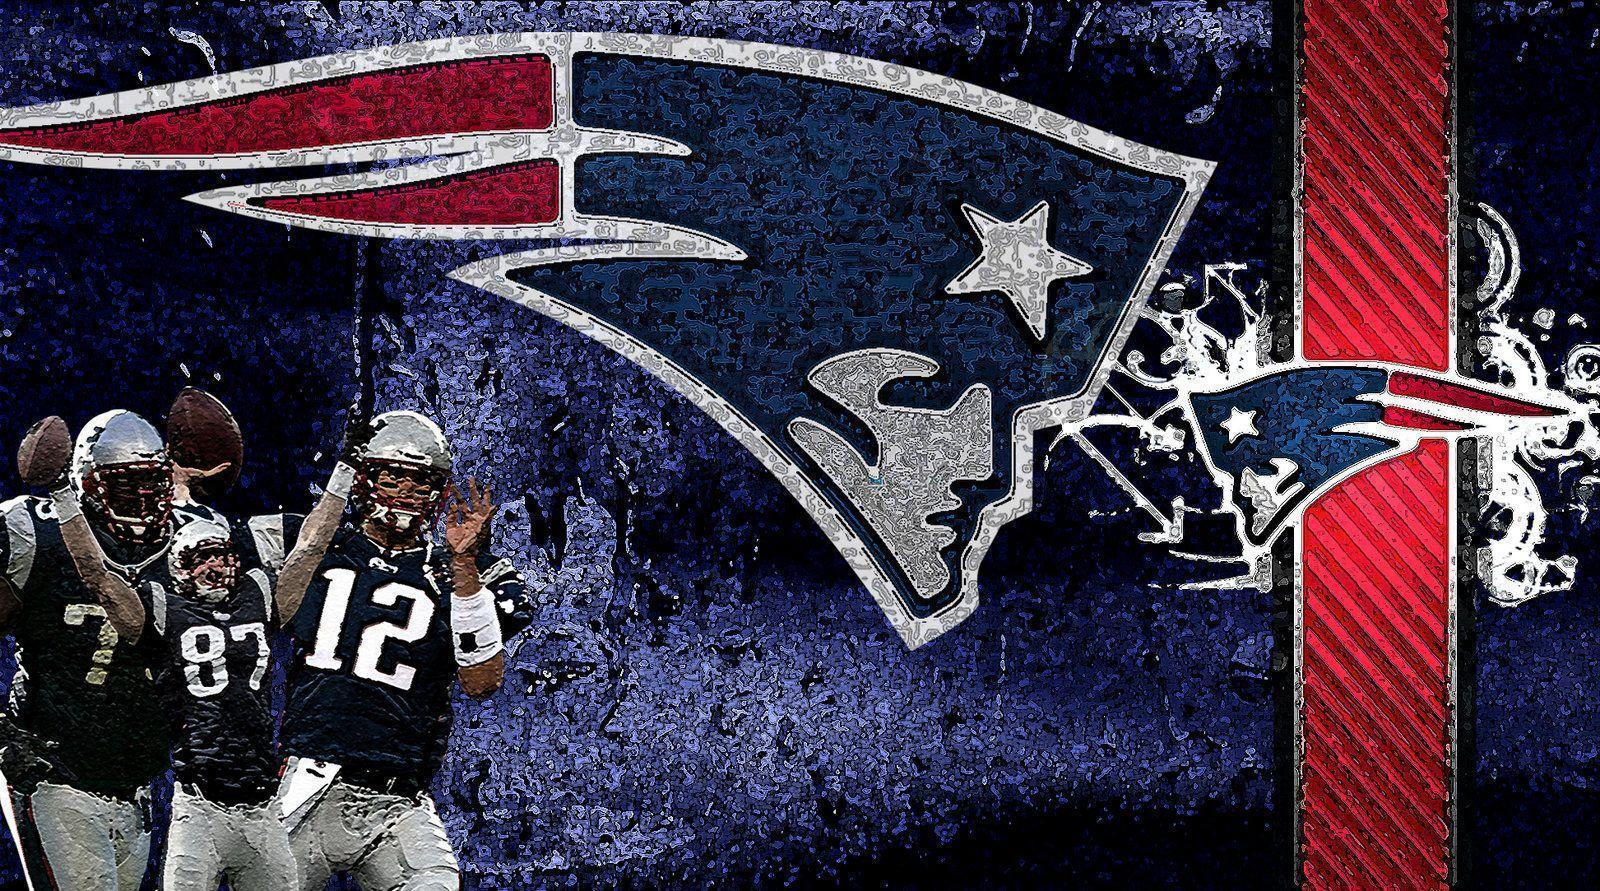 New England Patriots 2016 Wallpaper - WallpaperSafari